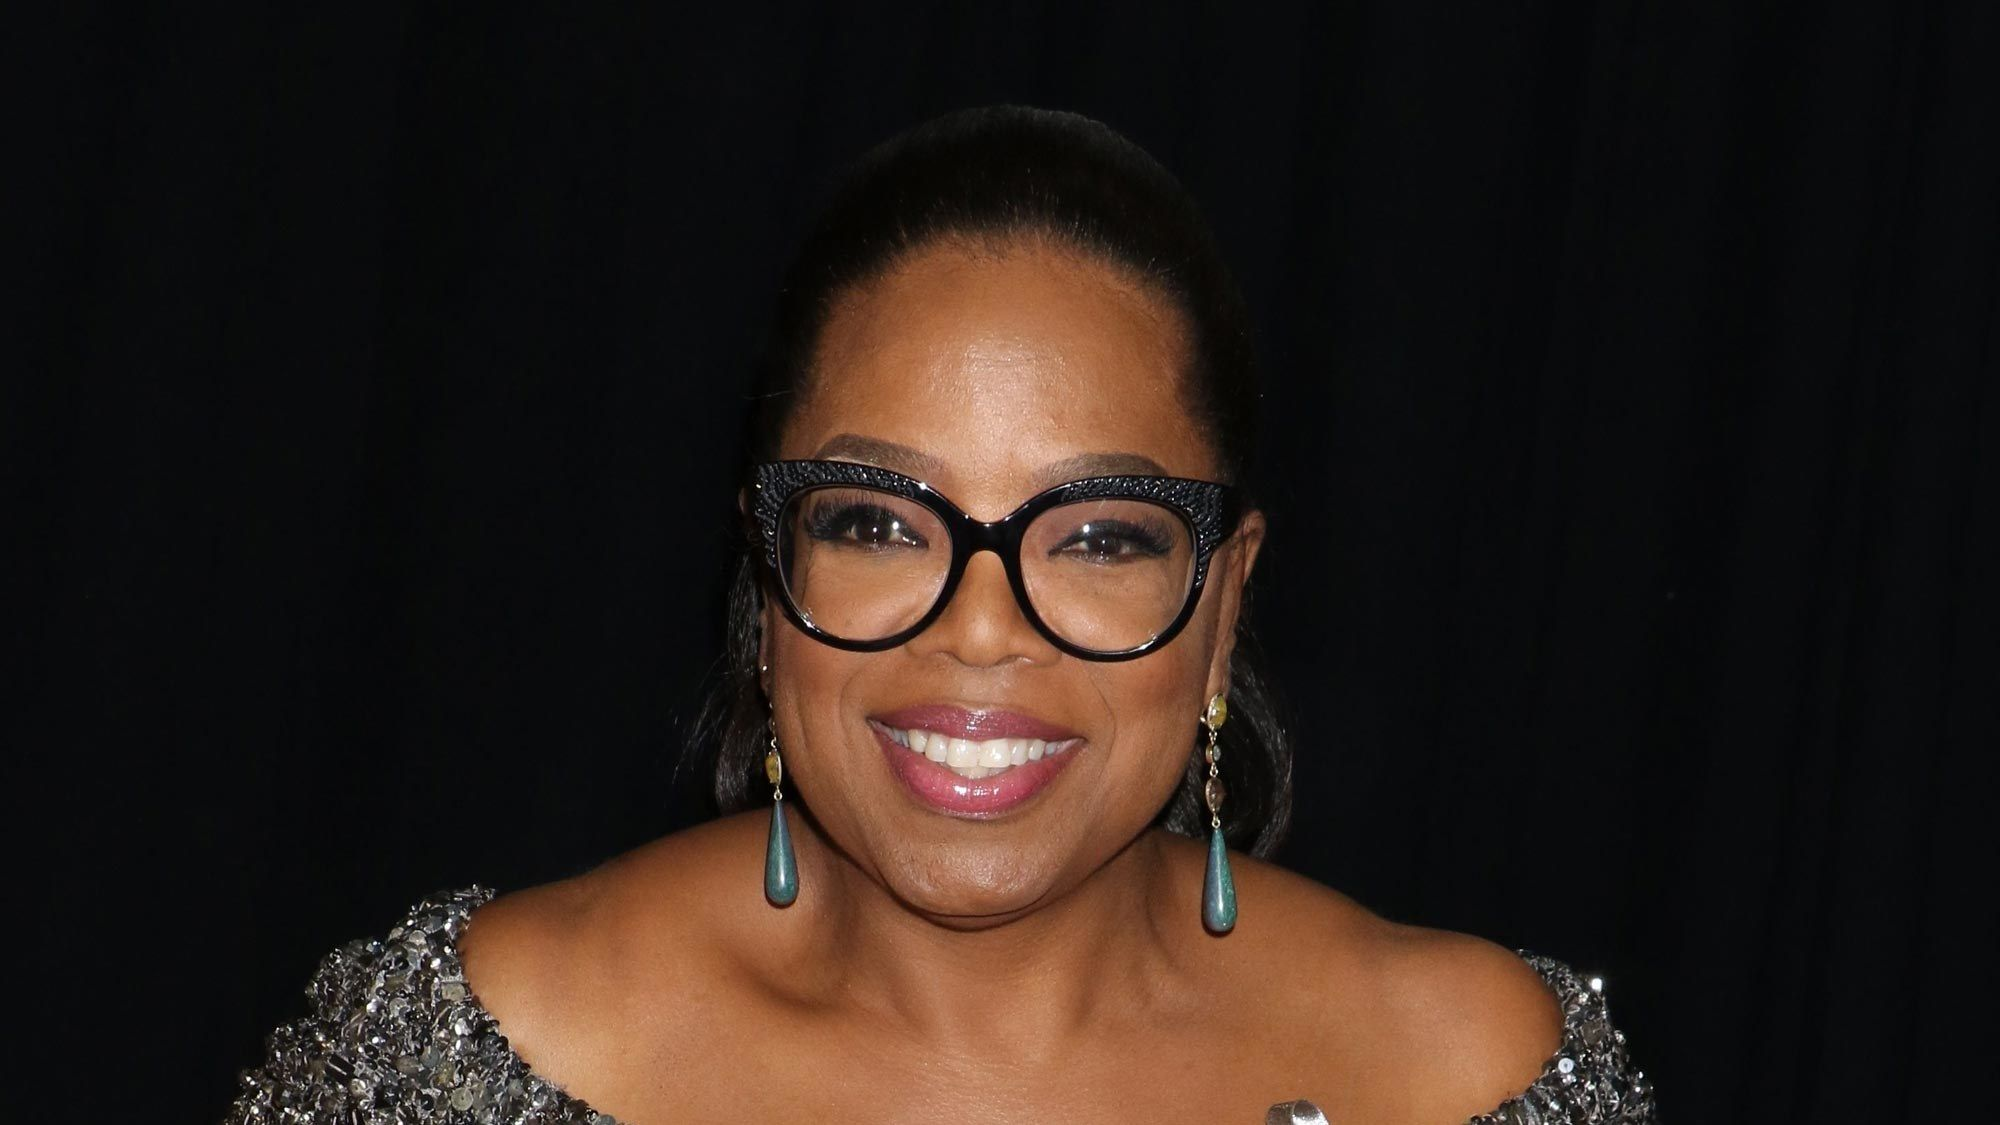 fe5e0d33cae7 Image result for oprah glasses. Find this Pin and ...